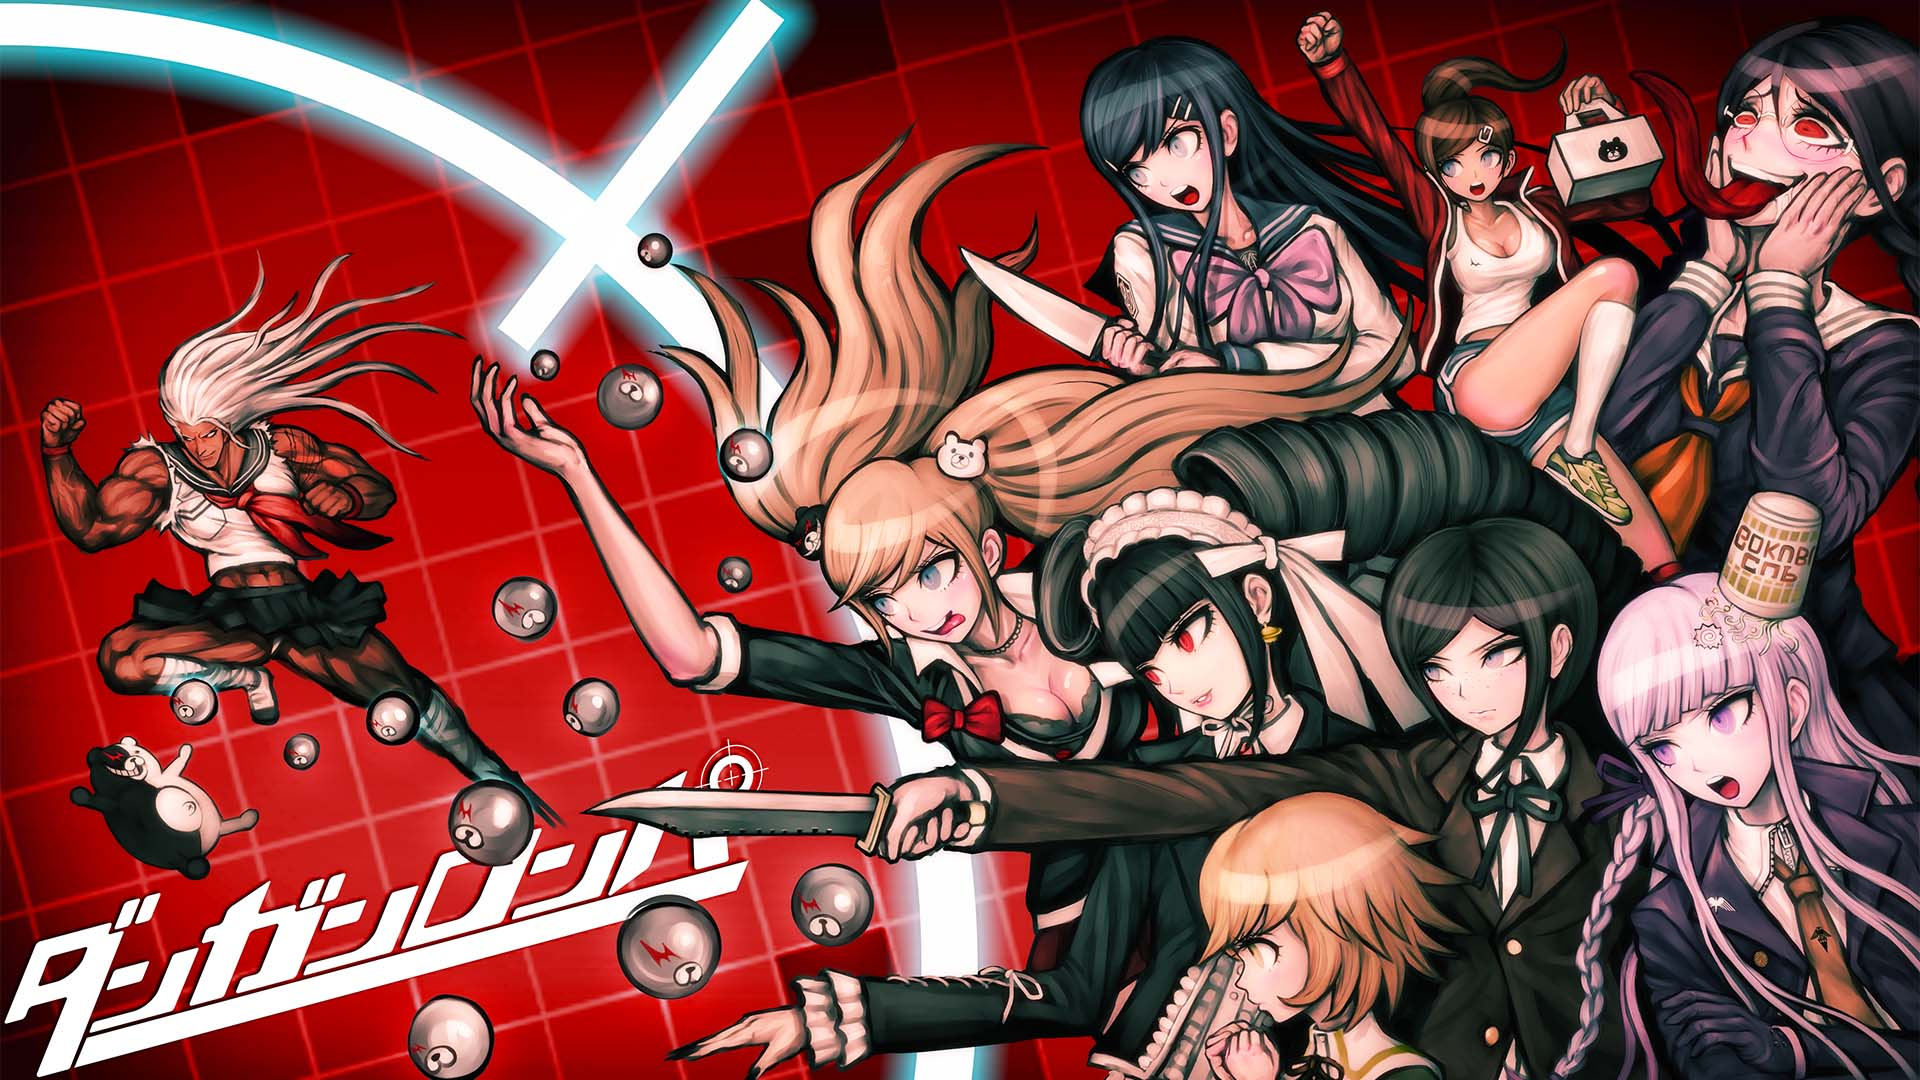 Danganronpa: Trigger Happy Havoc Wallpapers